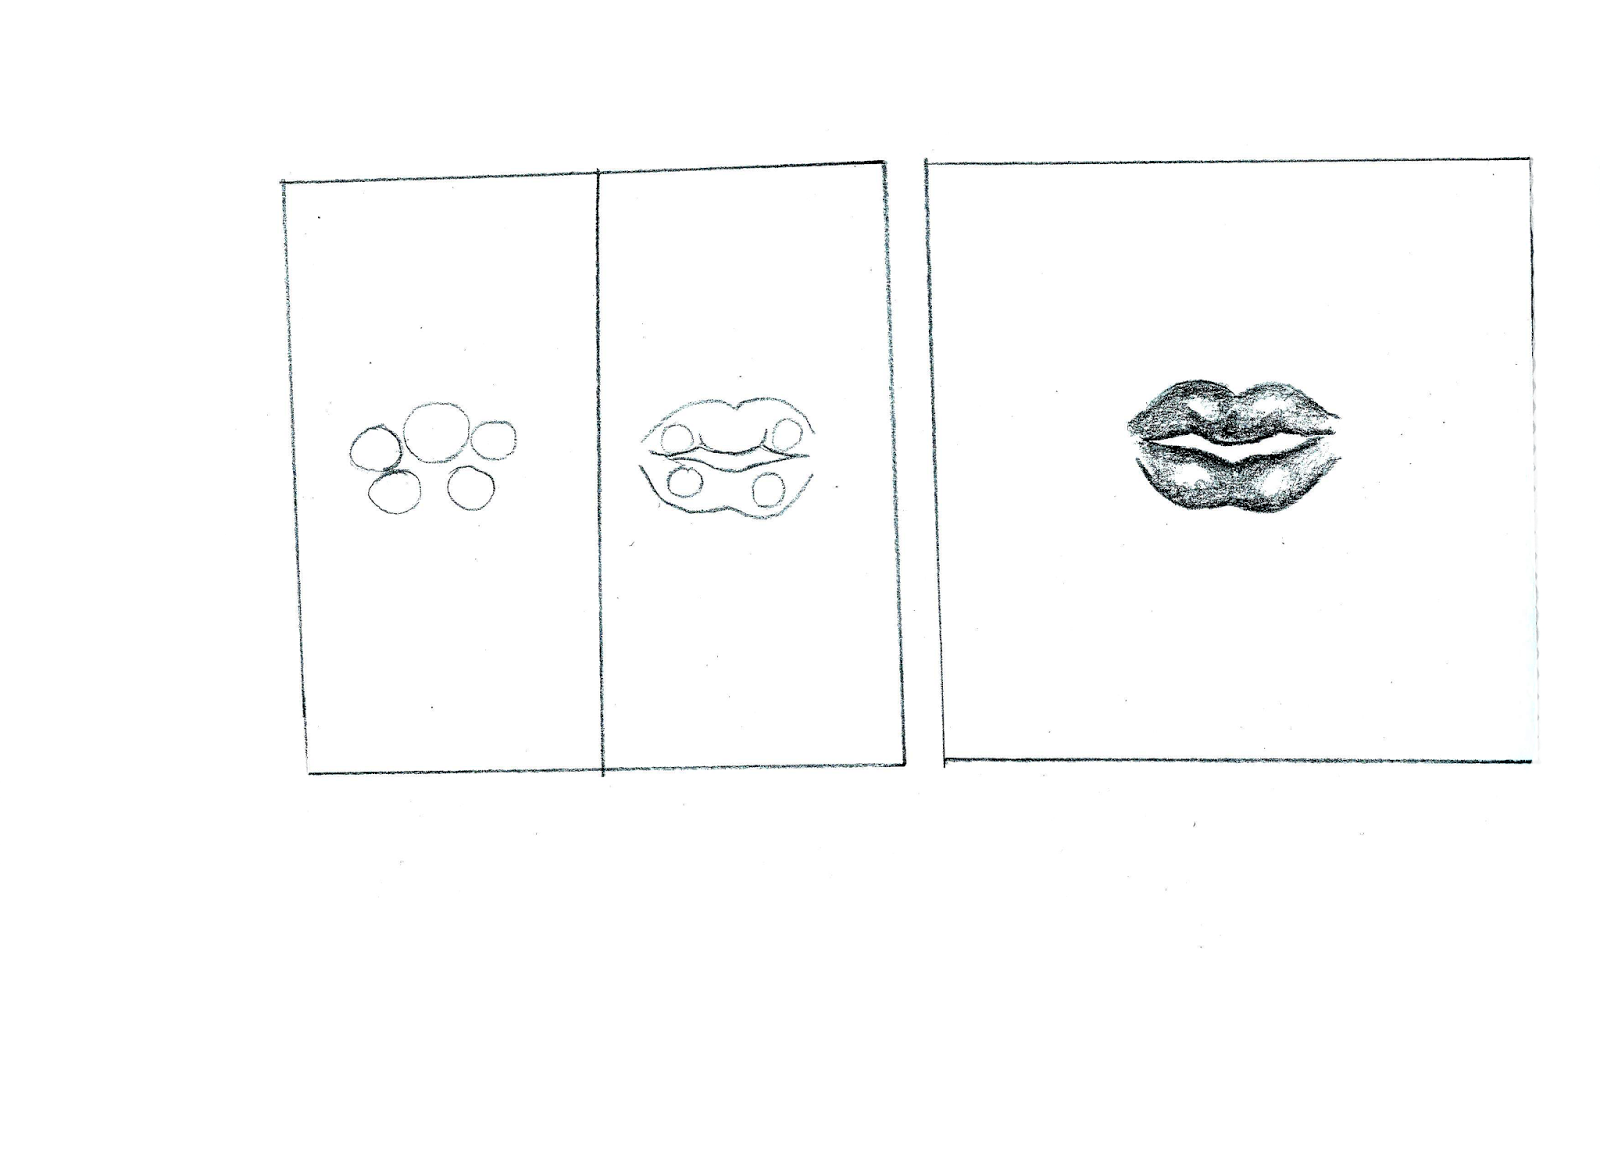 Leticia s art blog how to draw lips tutorial step by step for What to draw today